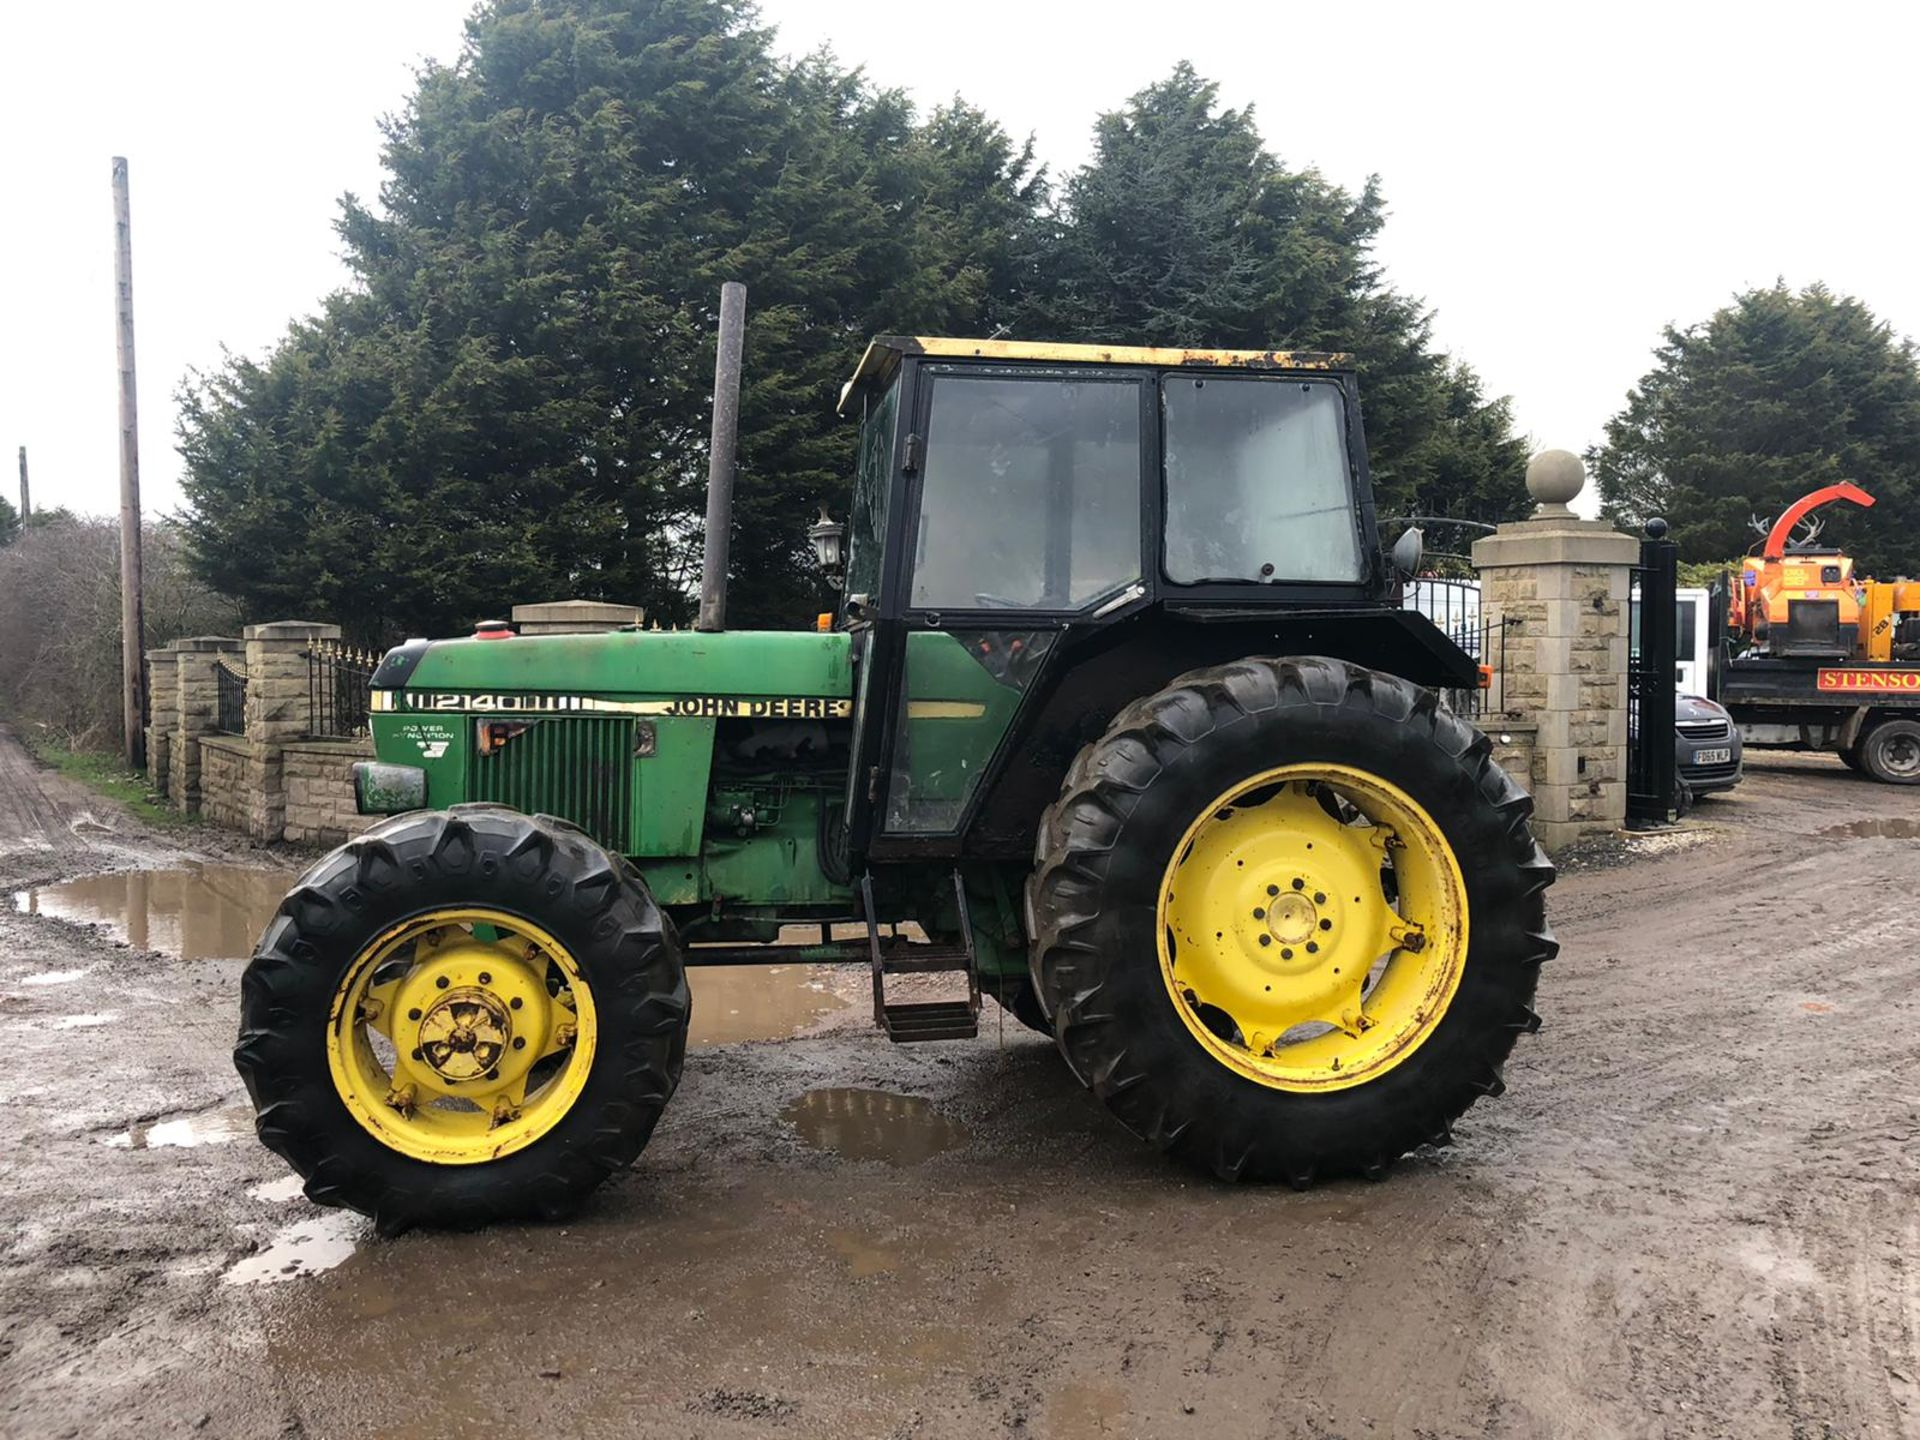 Lot 172 - JOHN DEERE 2140 GREEN / YELLOW TRACTOR, 4 WHEEL DRIVE, RUNS, WORKS AND DRIVES *PLUS VAT*